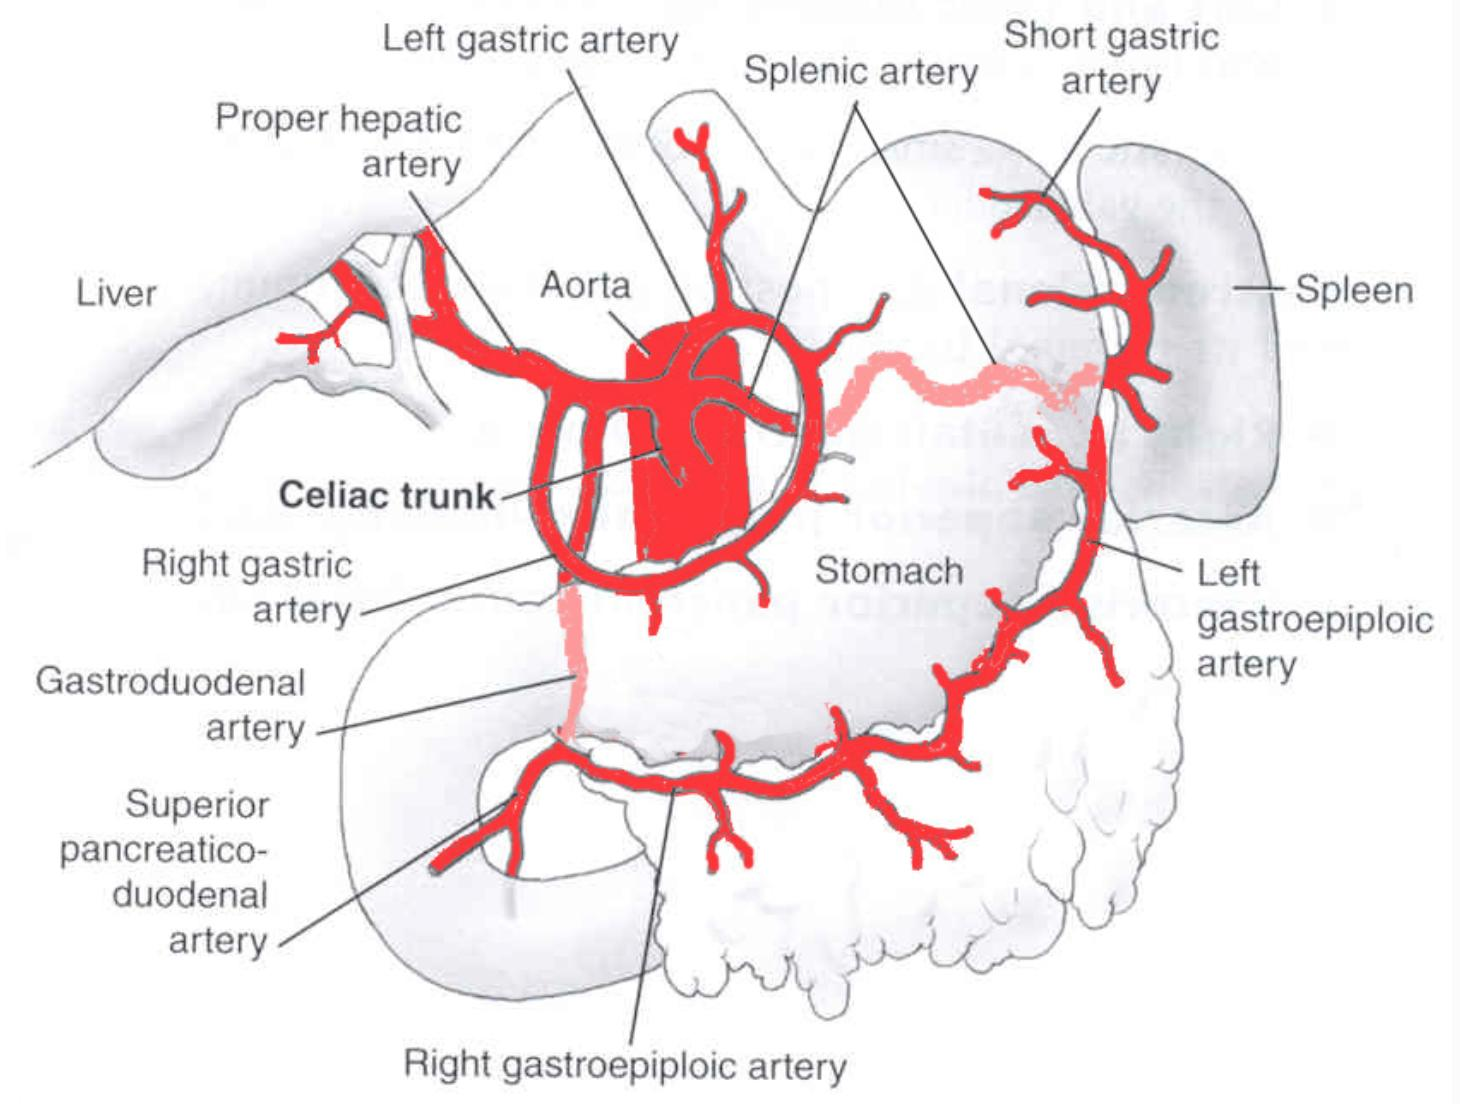 gastric bypass diagram vga to component wiring celiac trunk gastrointestinal medbullets step 1